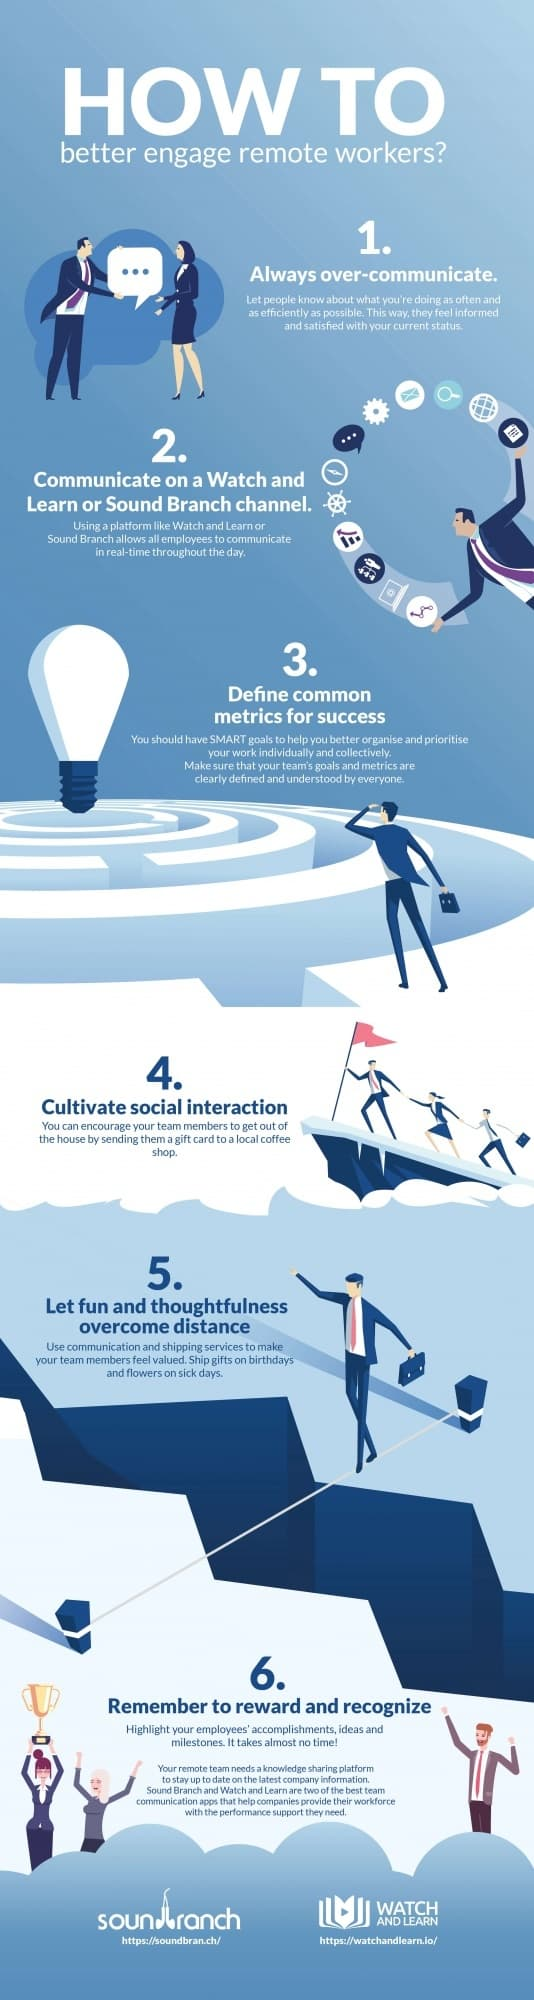 Infographic - How to Better Engage Remote Workers